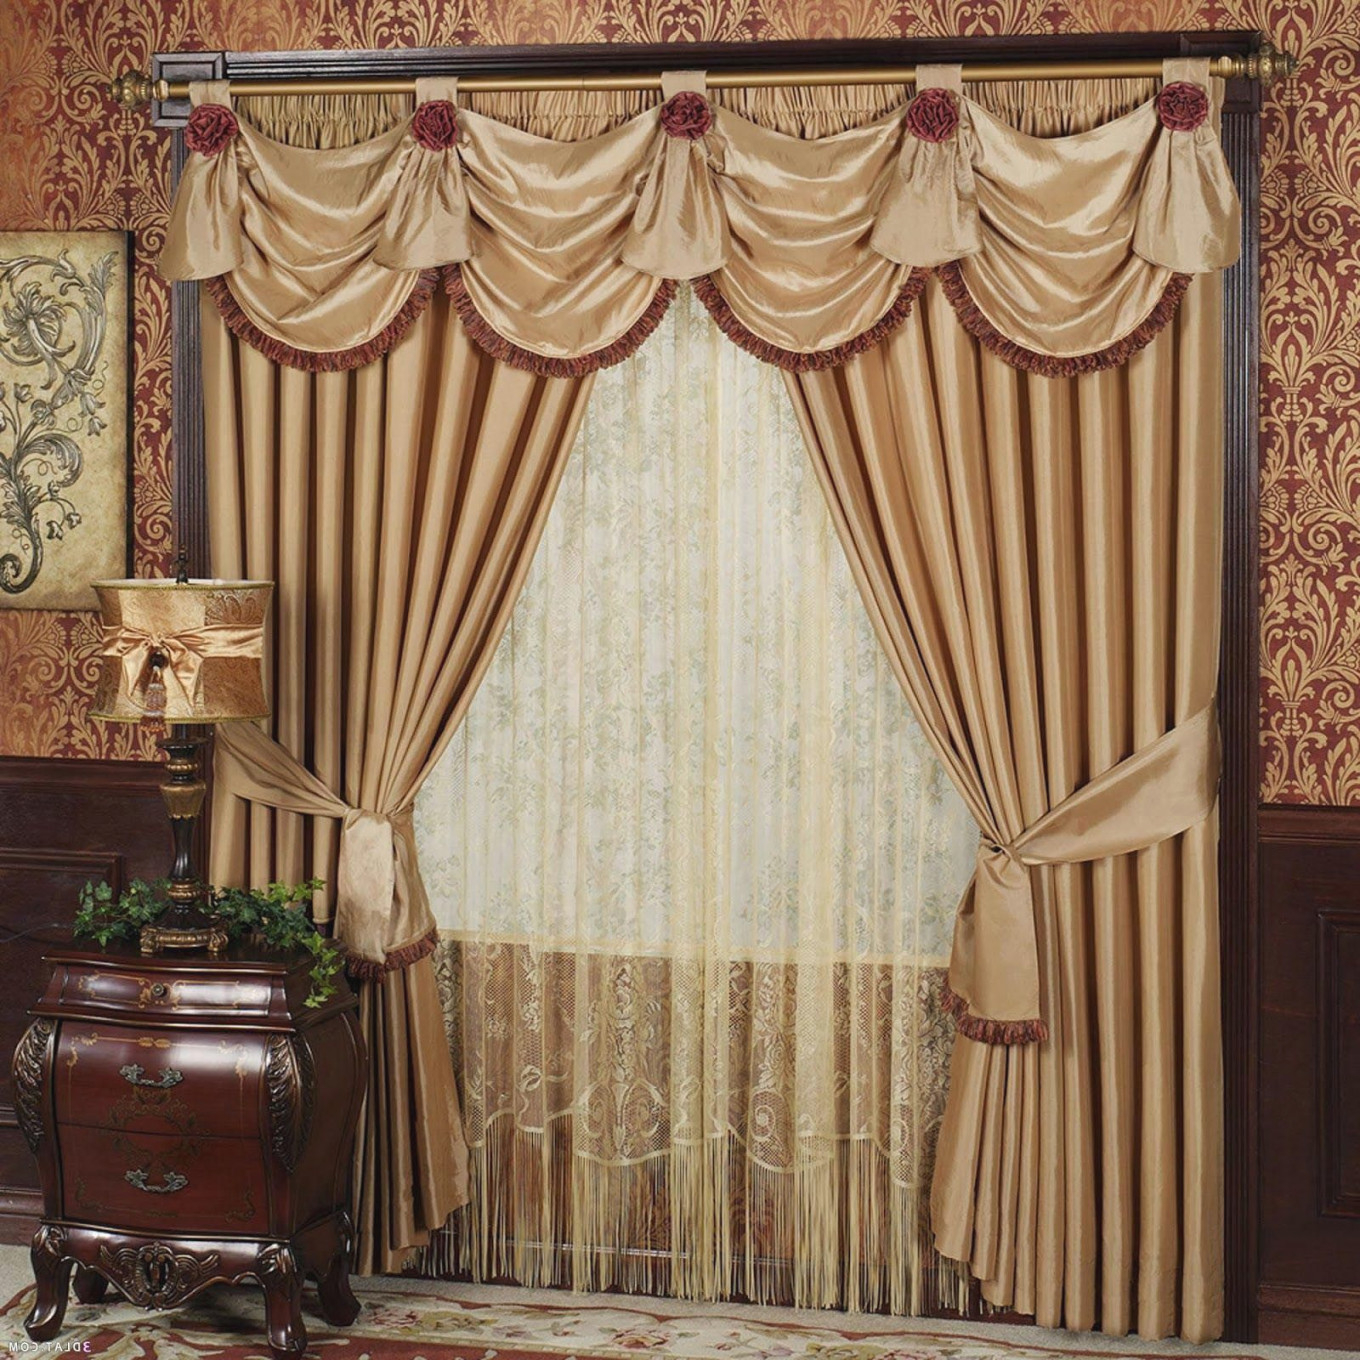 Living Room Drapes With Valances | Valances For Living Room in Fancy Curtains For Living Room